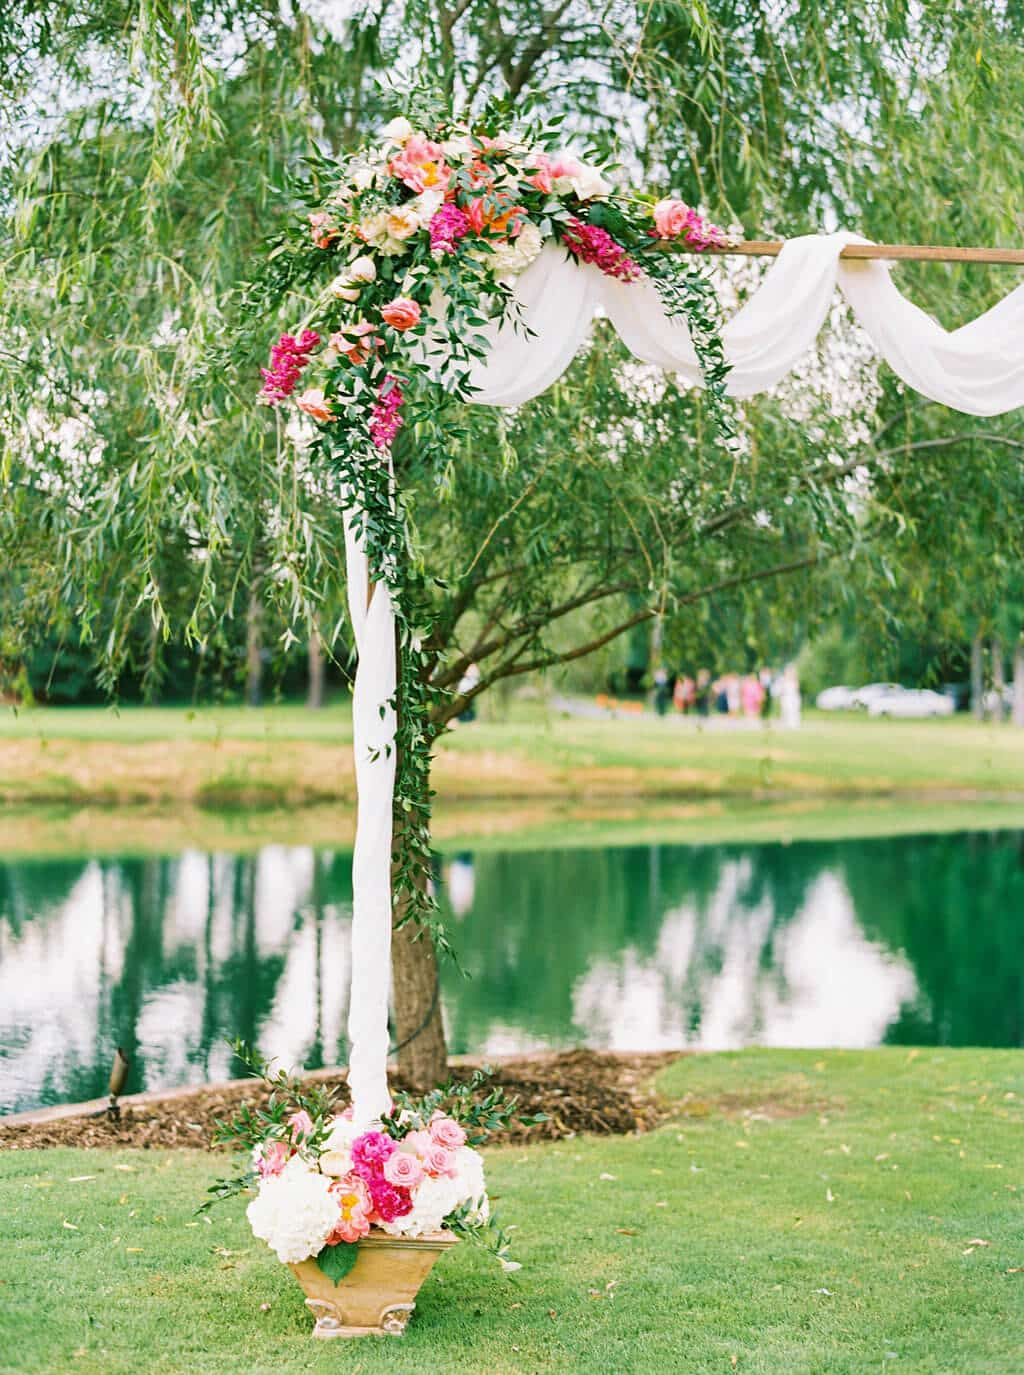 Wedding ceremony arbor with hot pinks, peaches, and greenery